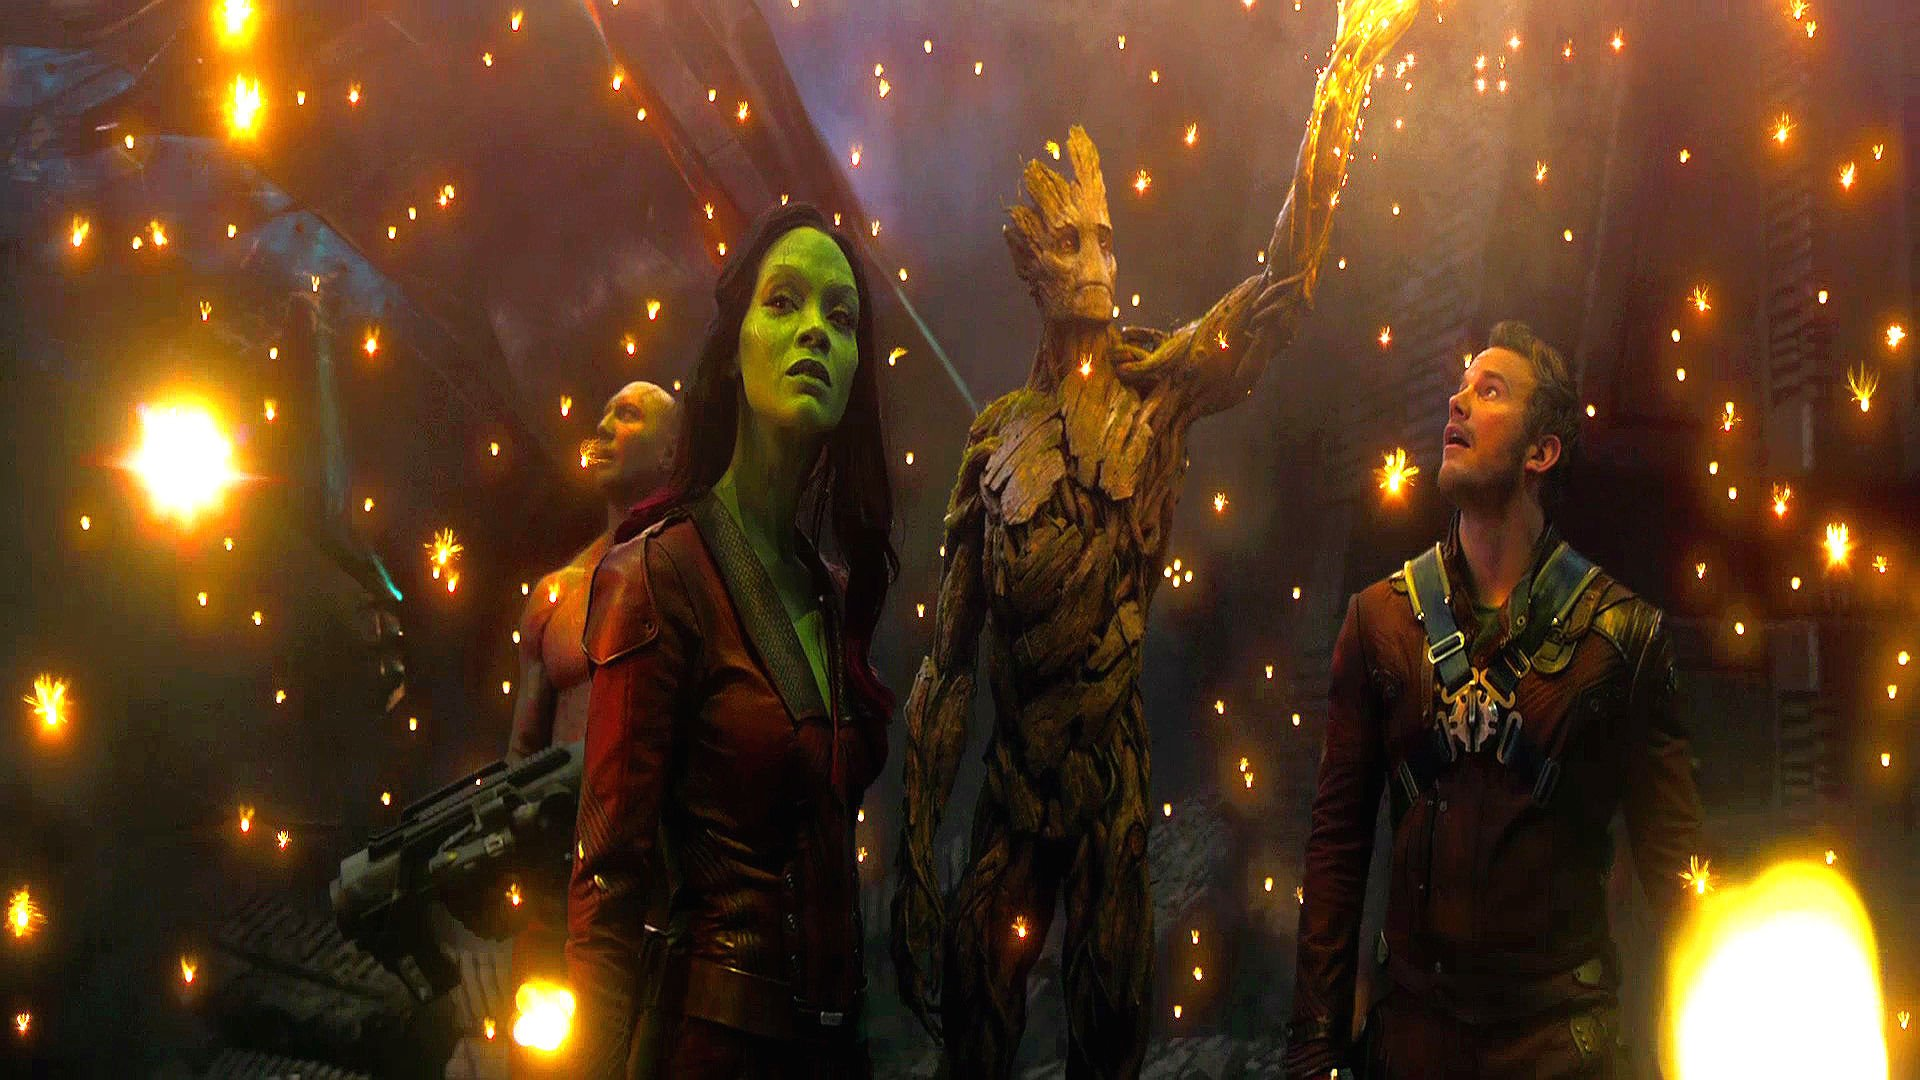 Sparkle Guardians Of The Galaxy Groot Wallpapers 1920x1080